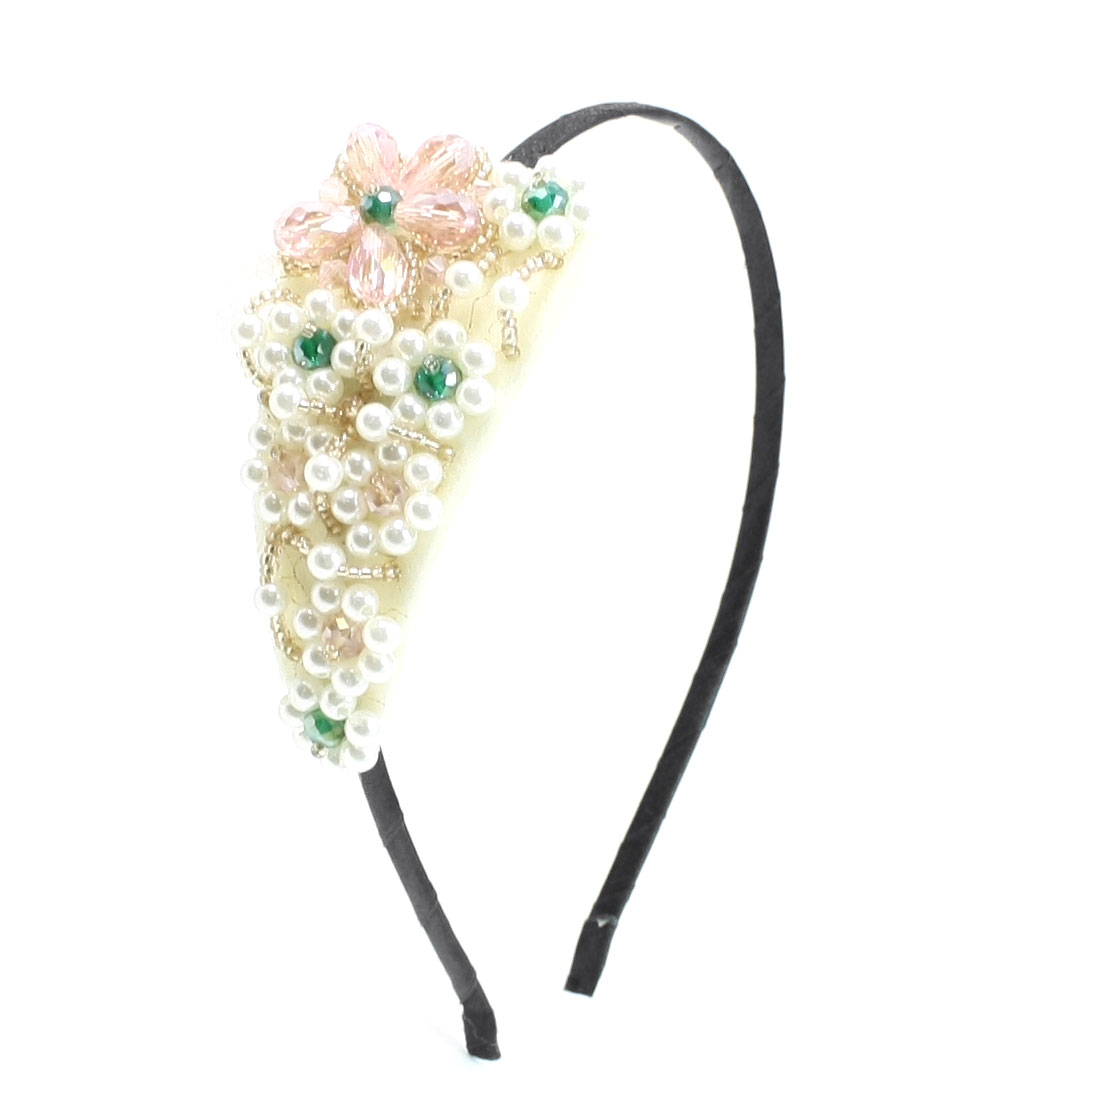 Light Pink Beads Leaf Shaped Headband Hair Band Decortion for Ladies